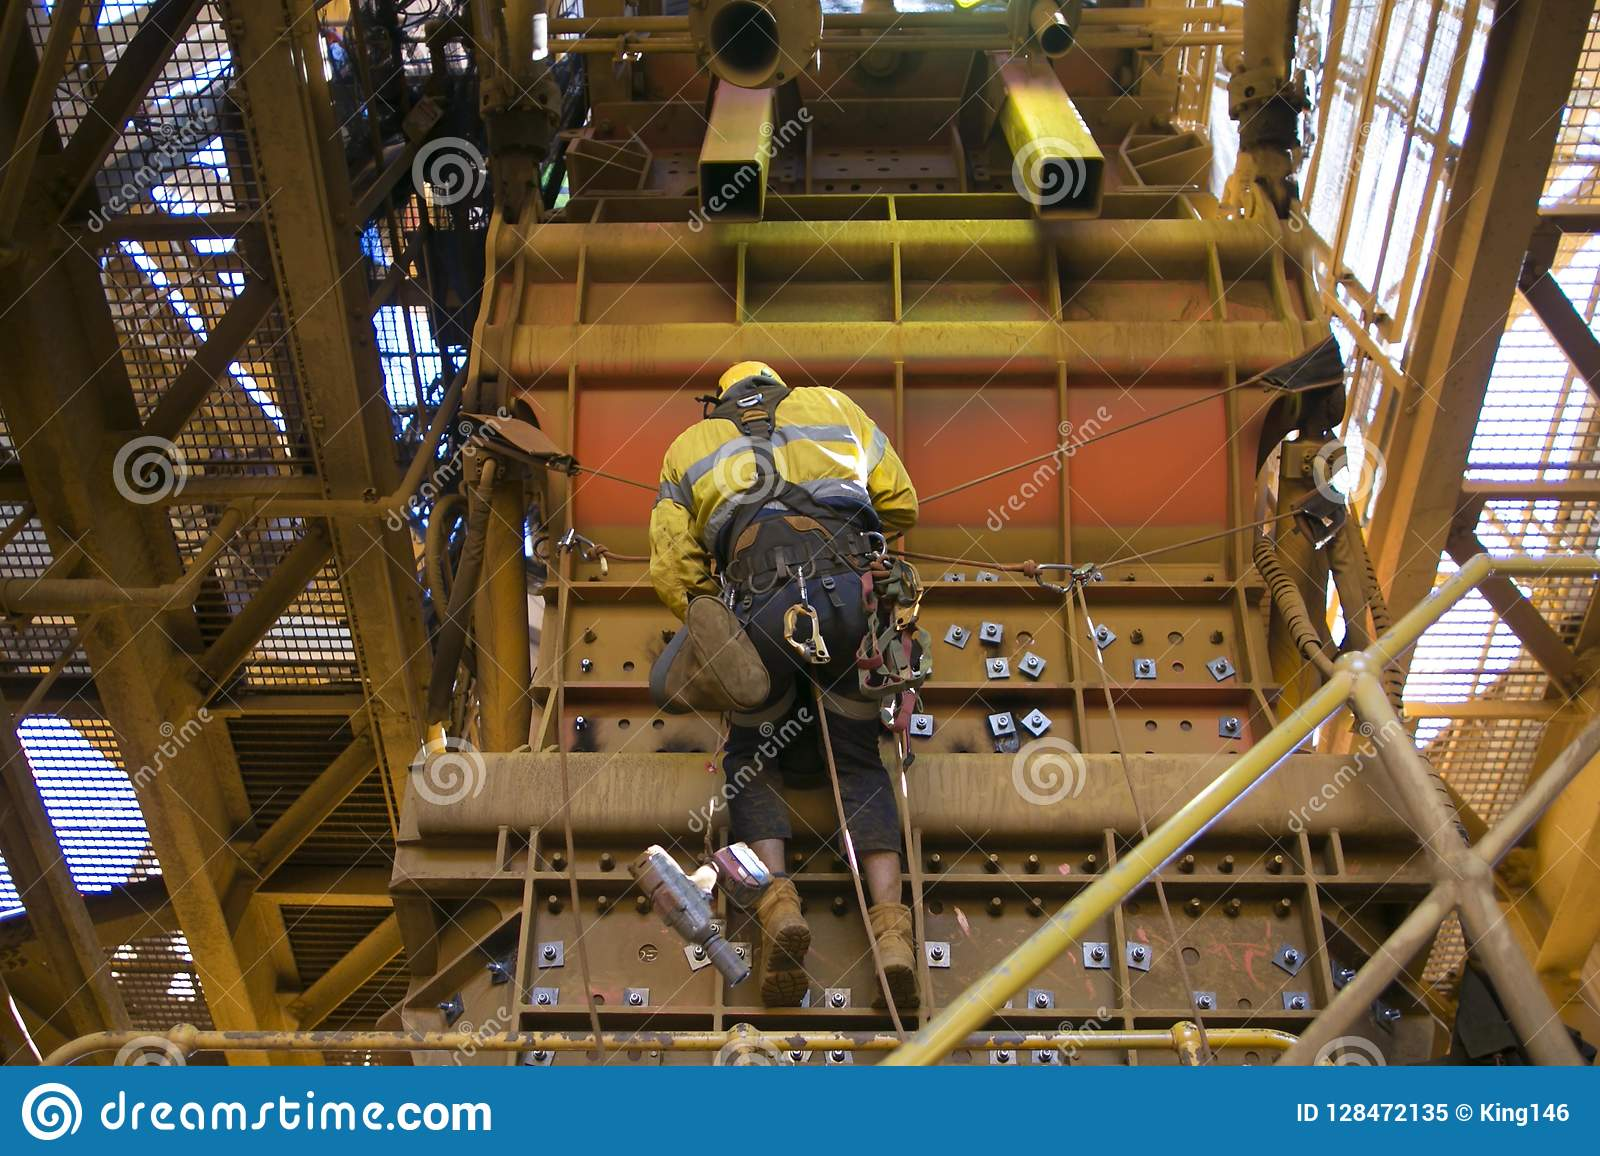 Male Rope Access Industry Worker Wearing Safety Harness